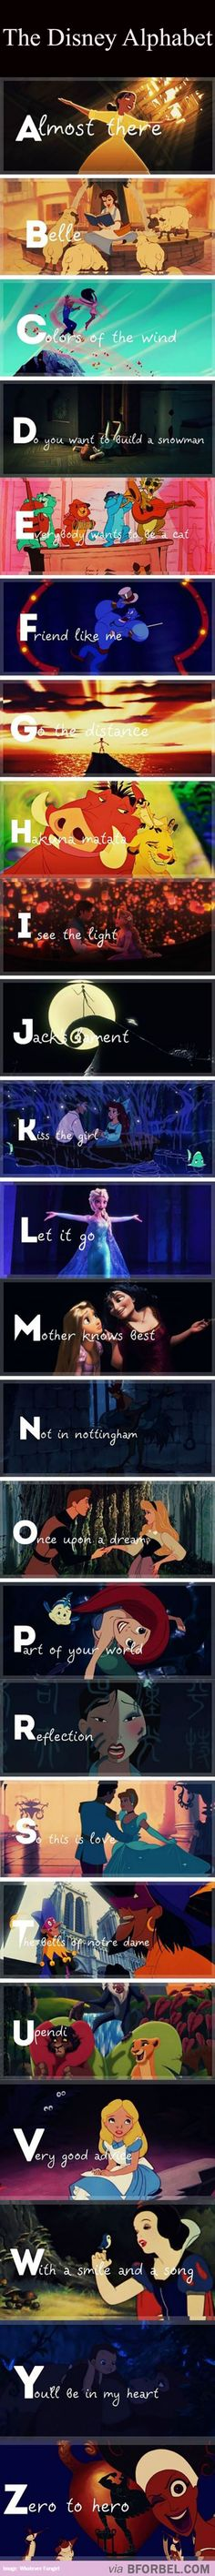 The Disney Songs Alphabet From A to Z: my future kids will know this by heart.